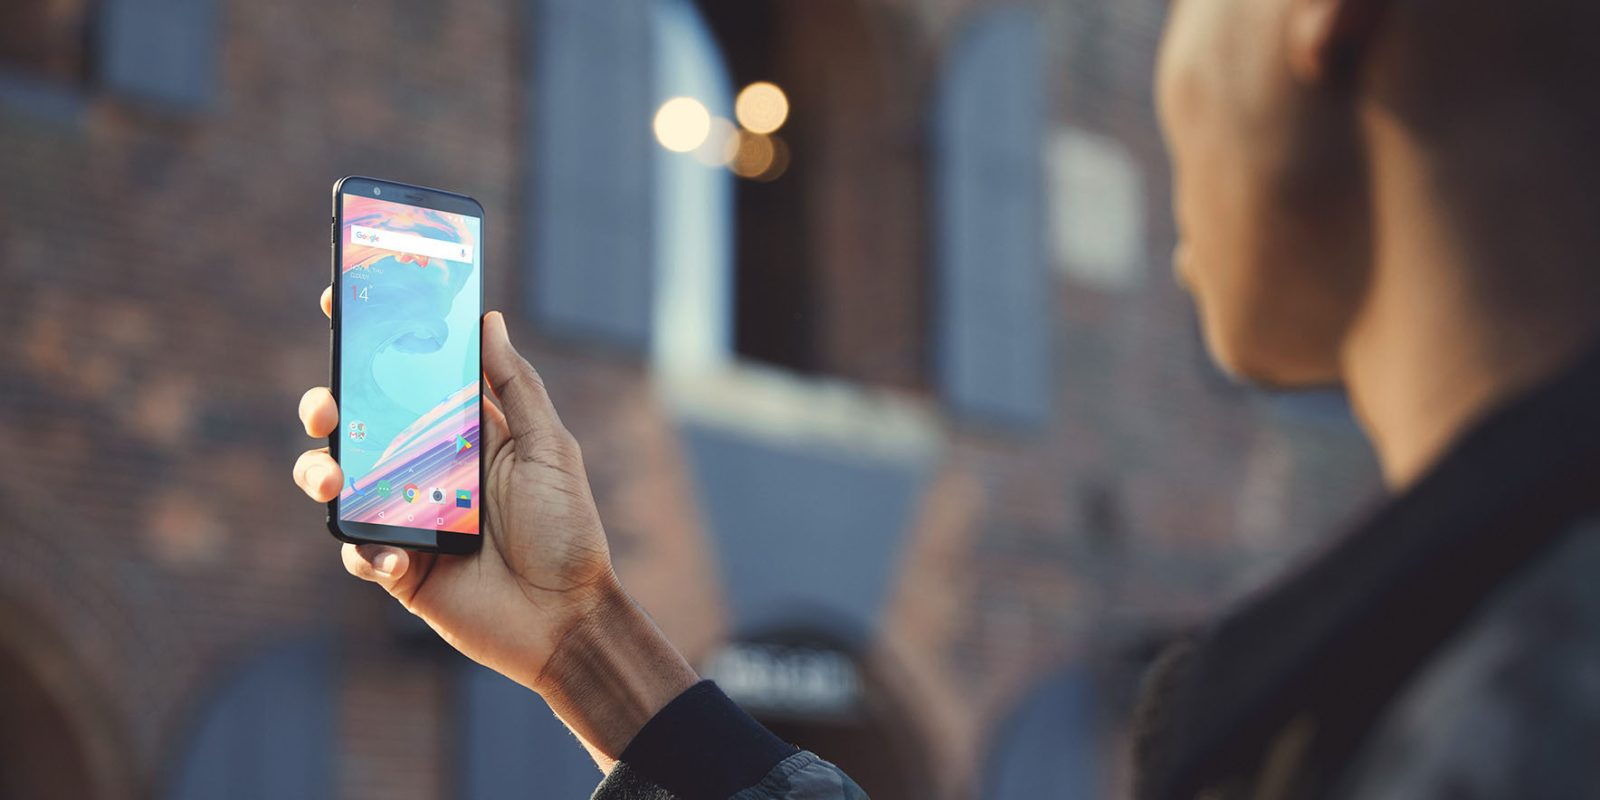 Face Unlock for the OnePlus 5T is designed for convenience